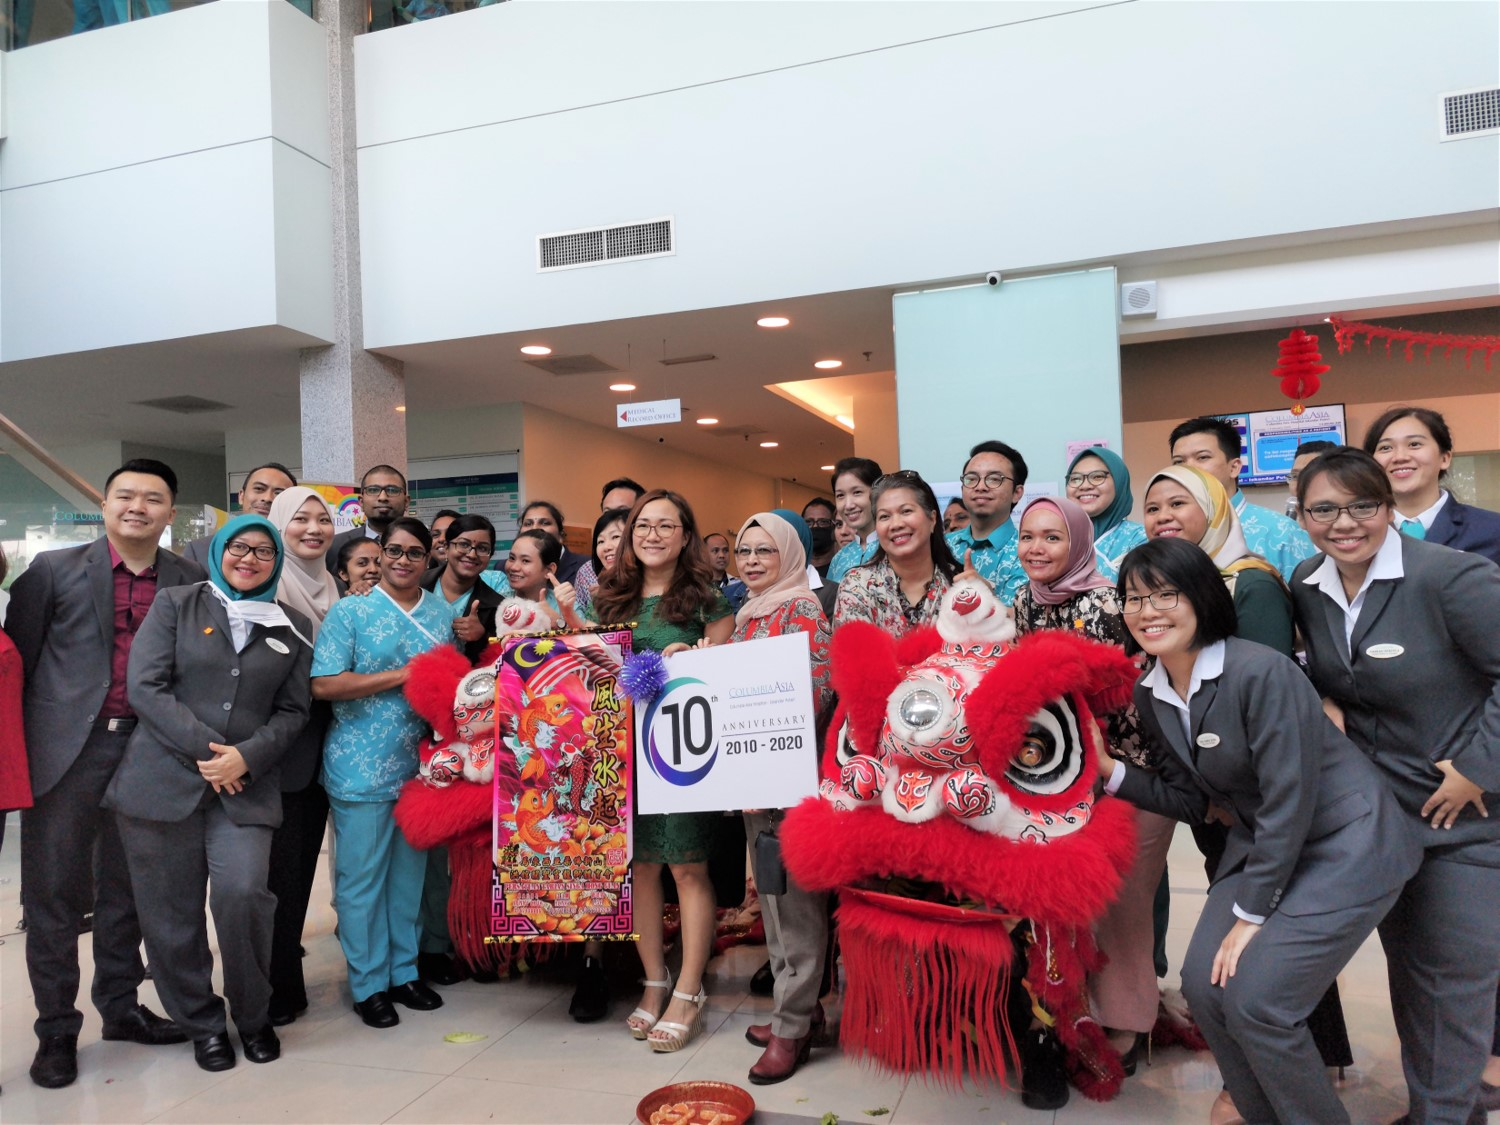 Columbia Asia Hospital Iskandar Puteri Celebrates with the Community